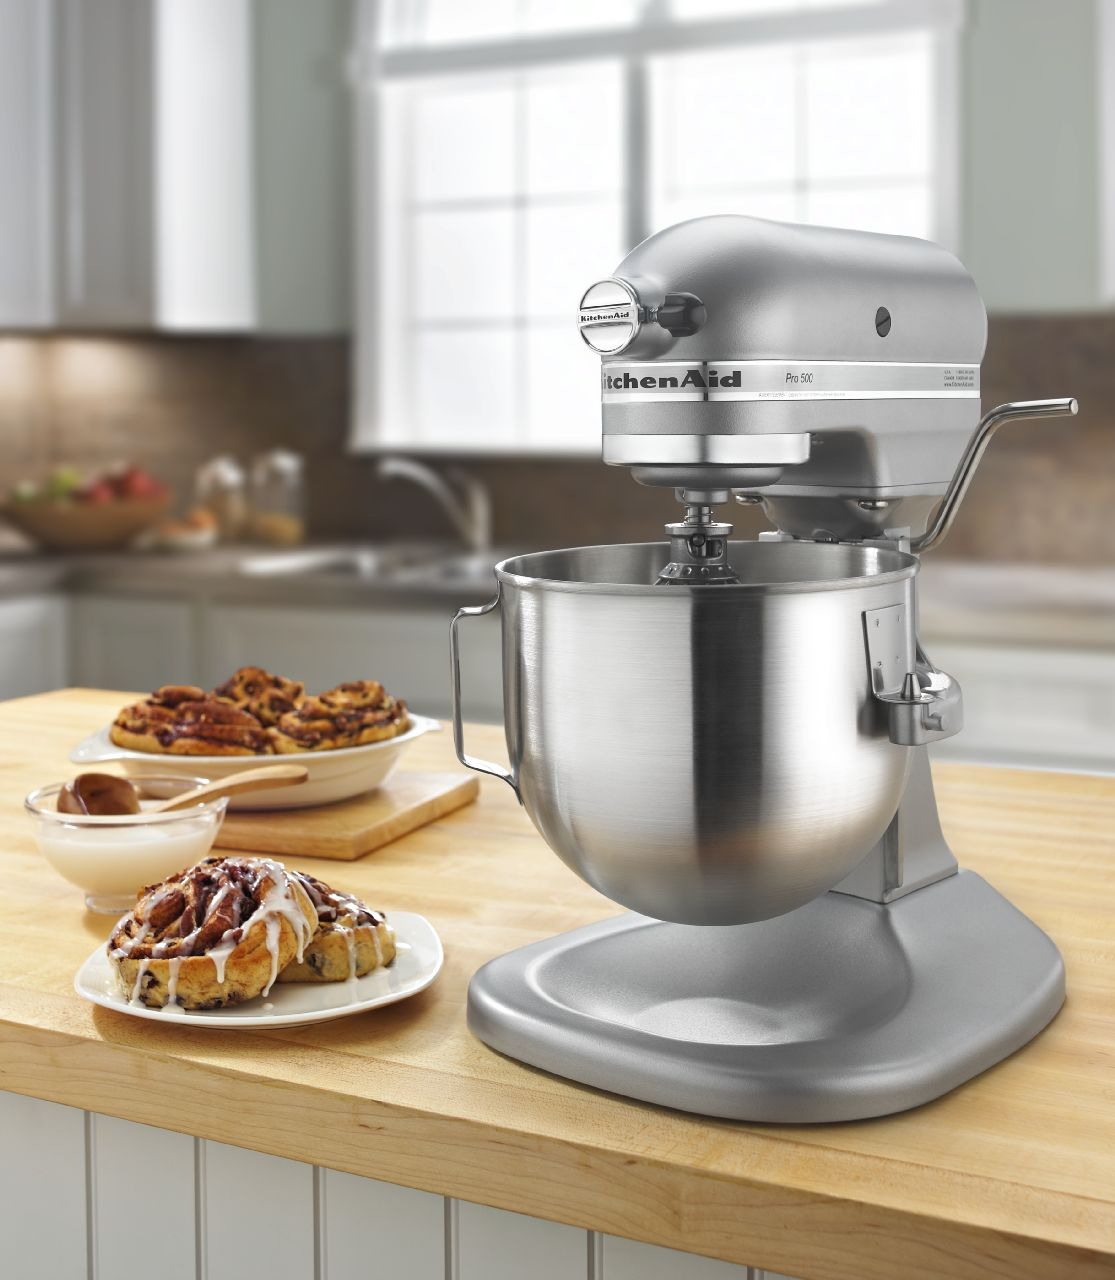 KitchenAid 5 Qt. Pro 500 Series Silver Stand Mixer